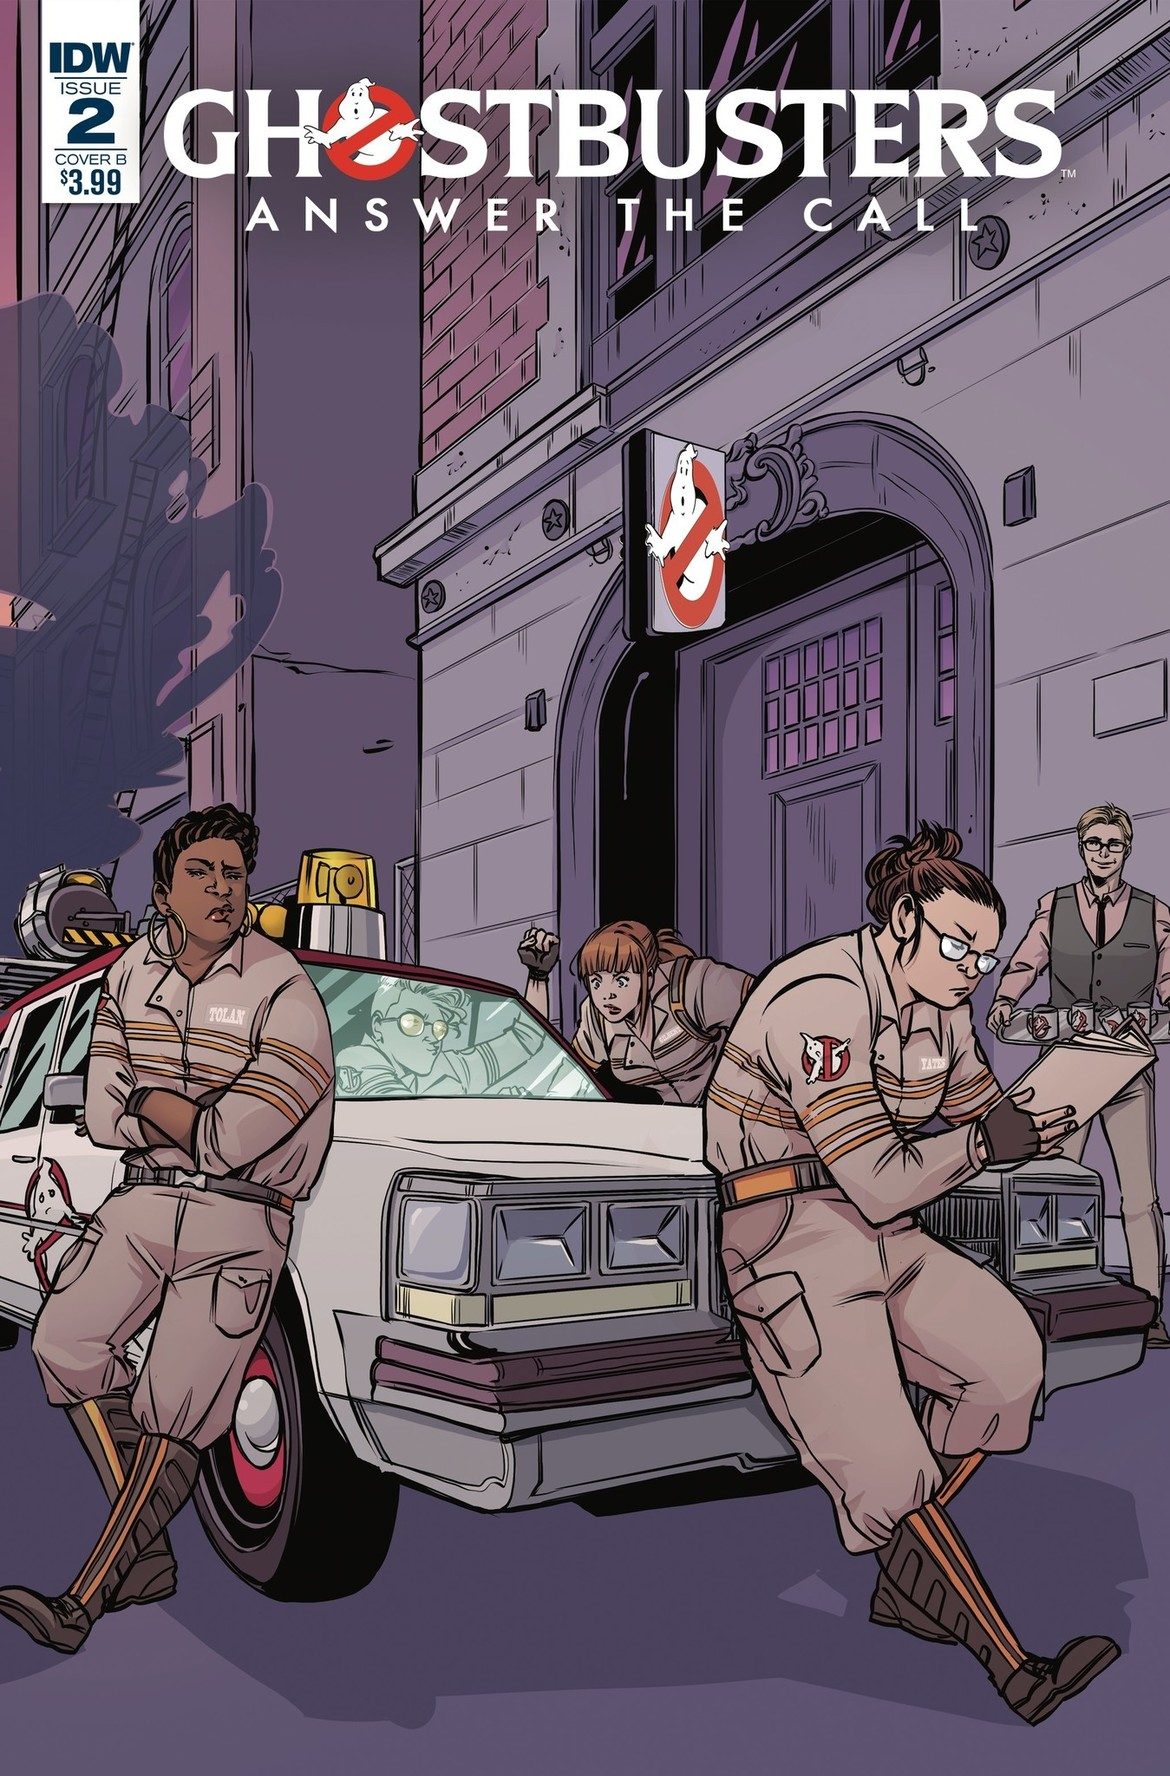 ghostbusters-answer-the-call-2-viecelli.jpg